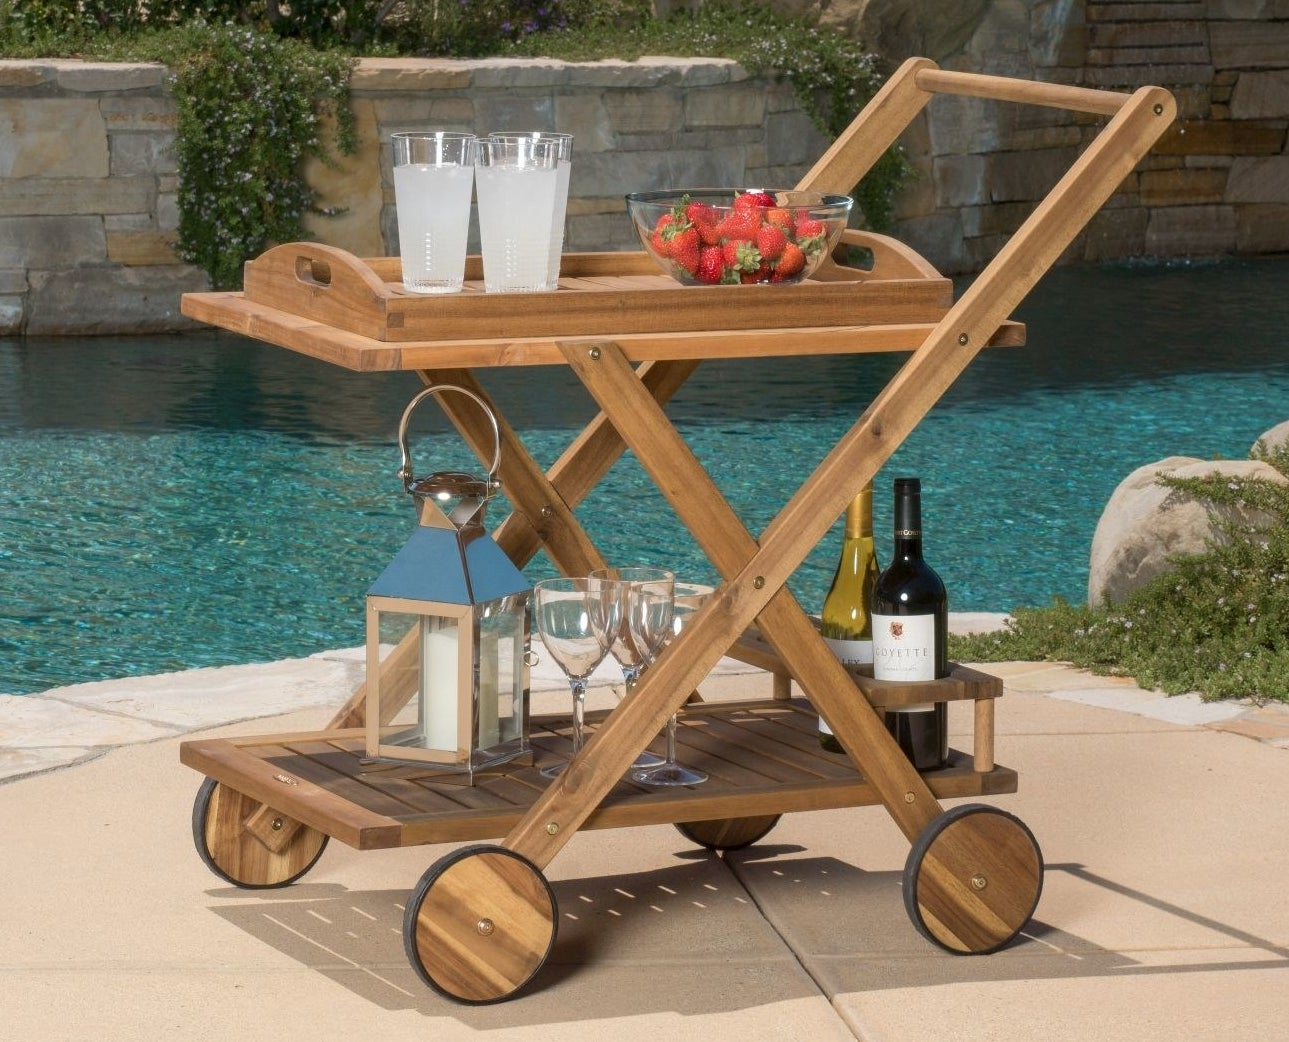 Two-level bar cart on four wheels holding wine, glasses, and a bowl of fruit